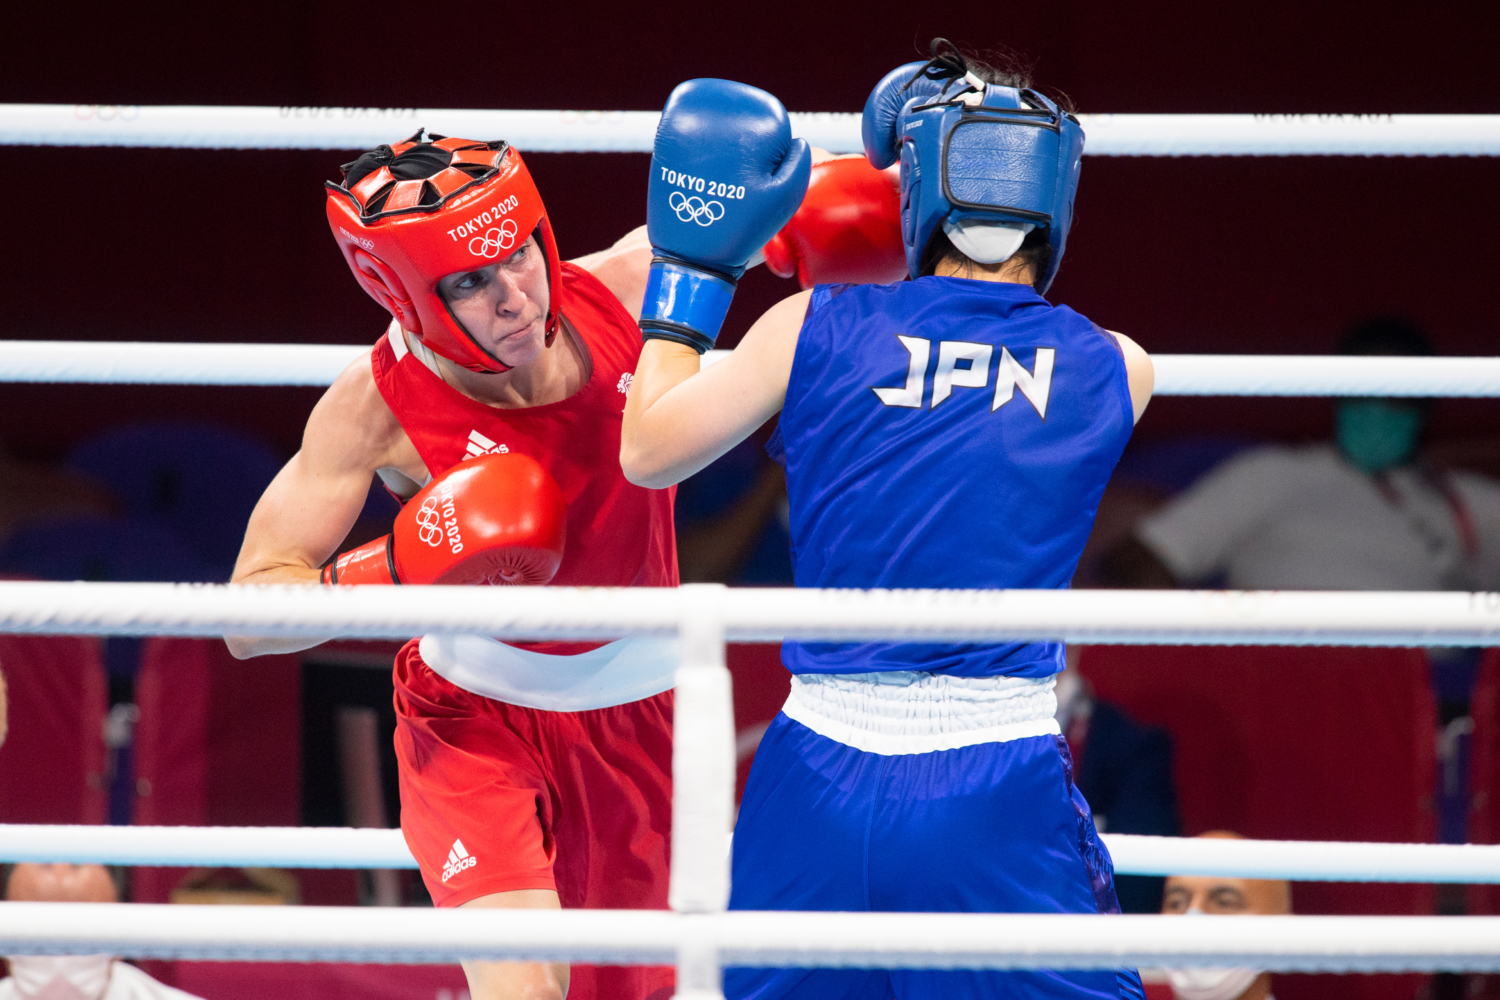 Olympics day 8: Mixed day with guaranteed medal, advances & bow outs | Boxen247.com (Kristian von Sponneck)